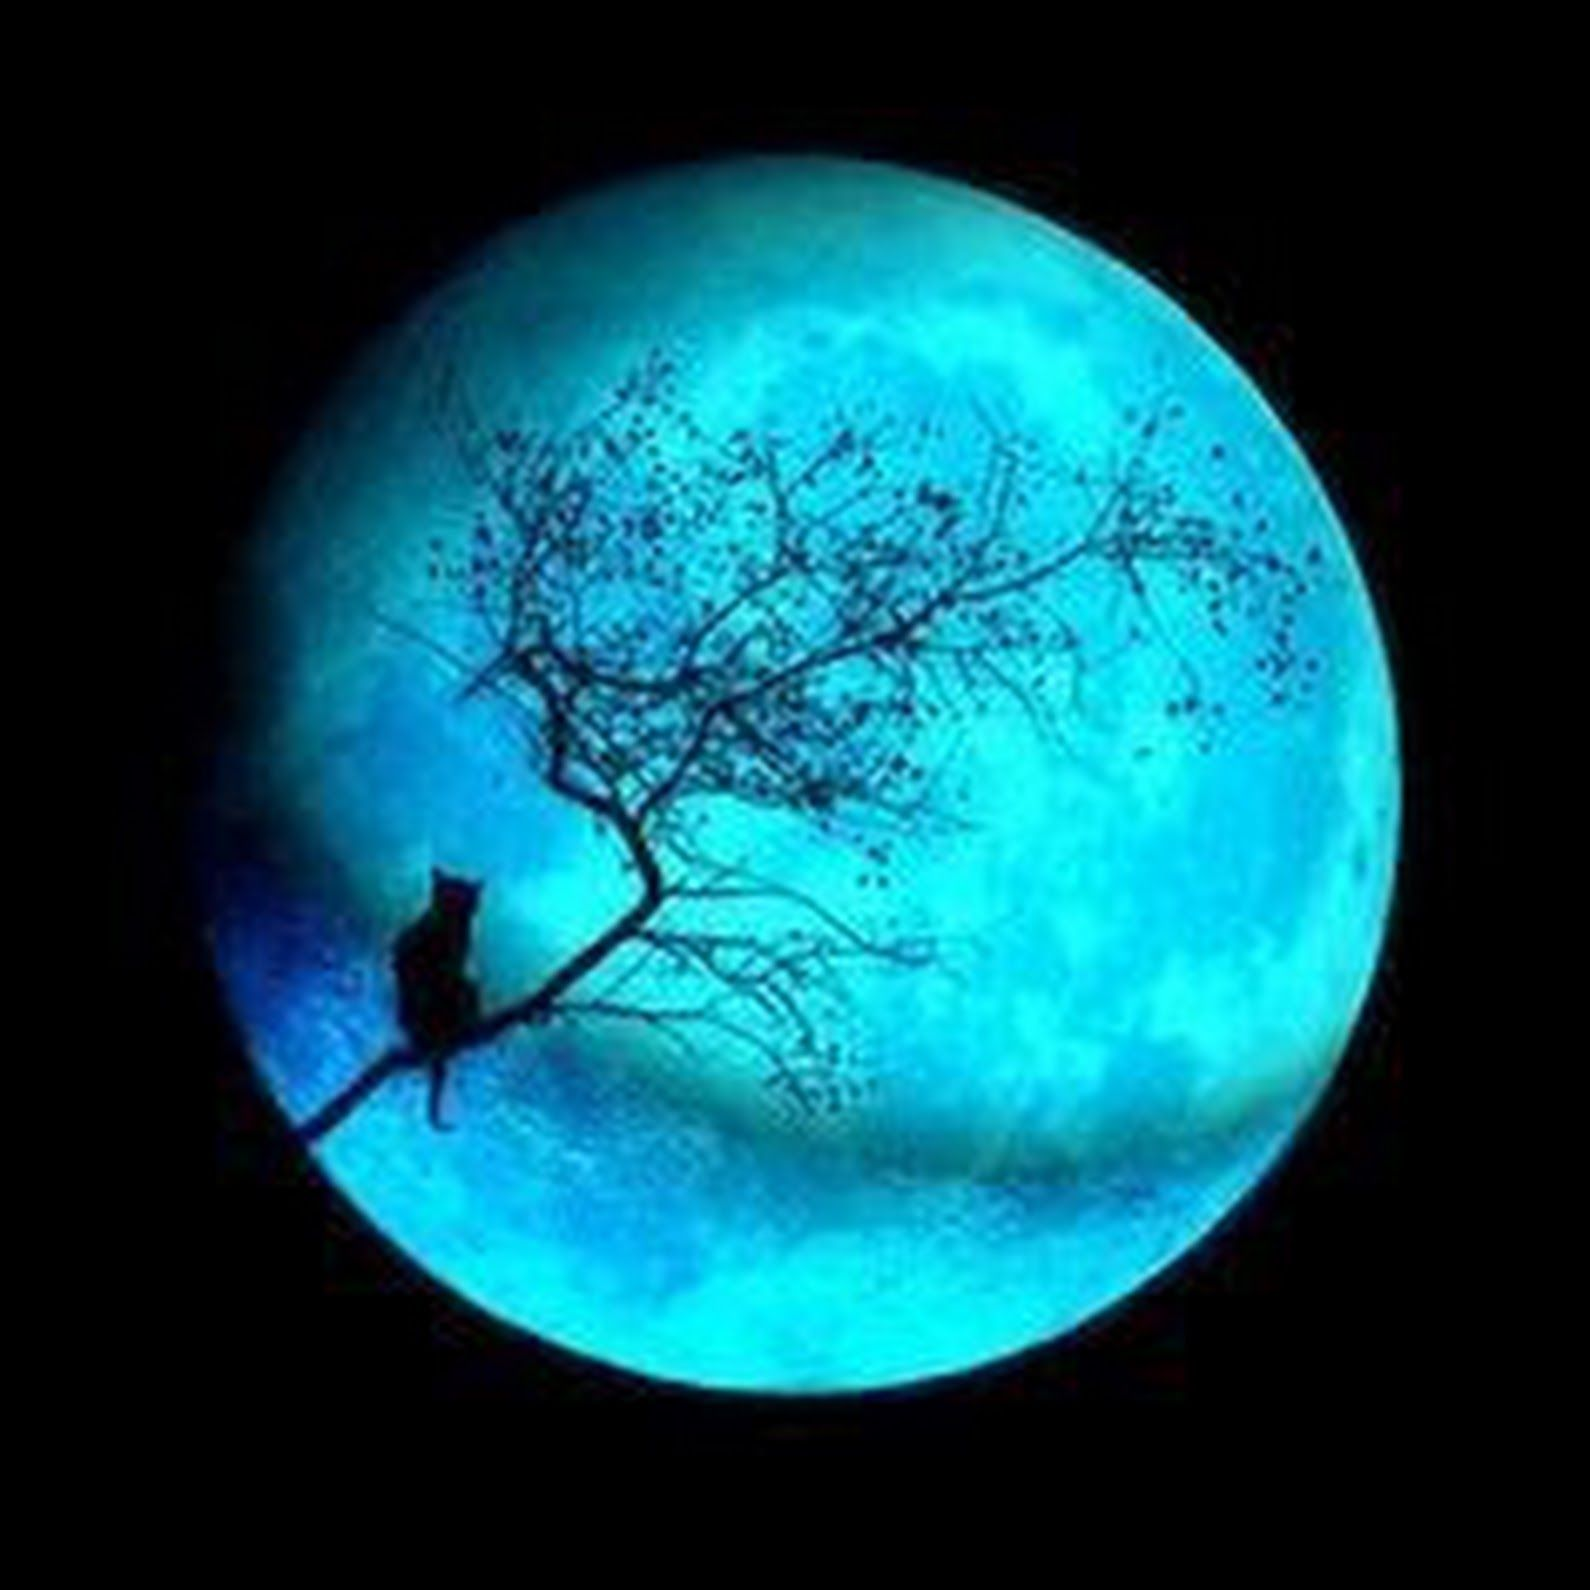 Super full moon for tonight people! Enjoy! Moon pictures